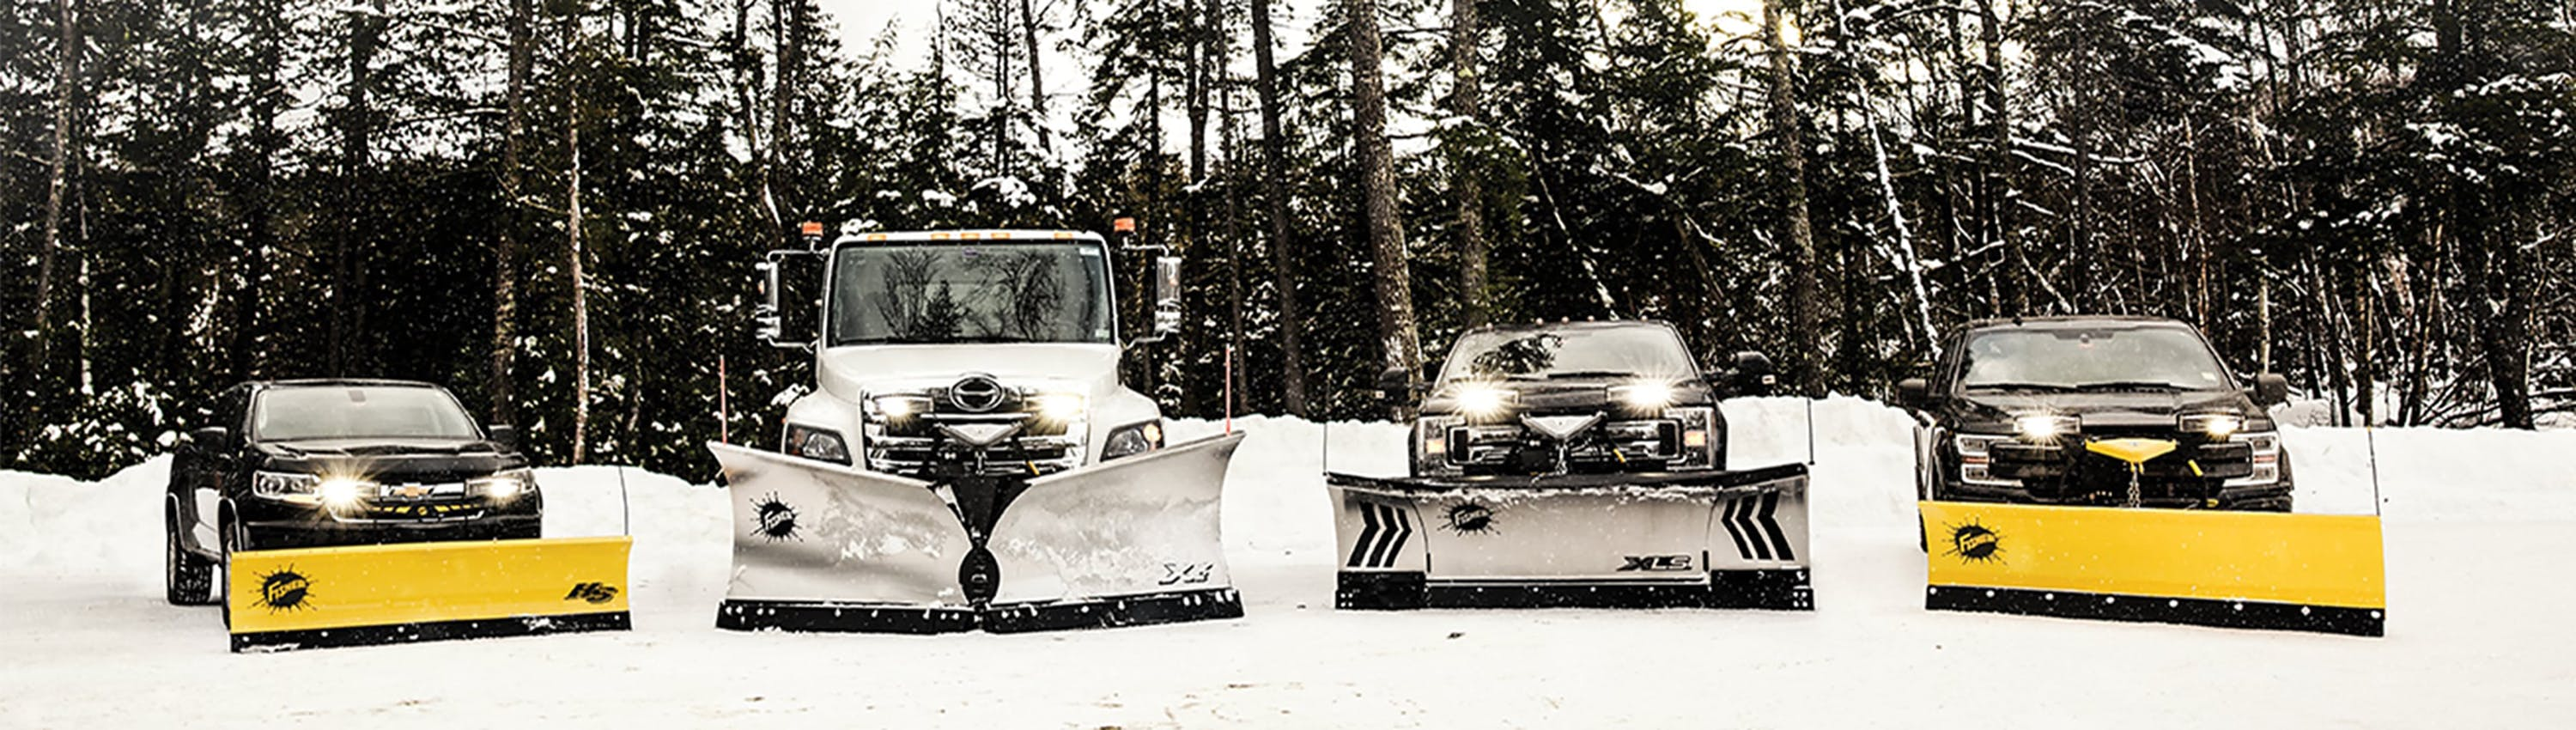 Fisher Engineering is a proven and trusted manufacturer of snow and ice control equipment in the commercial market.  With over 70 years of manufacturing experience, FISHER® produces commercial snow plows, hopper and tailgate mounted ice control spreaders and a wide variety of accessories that allow you to customize your equipment to your preference. Their industry leading expertise and dedication to high quality products has been a FISHER tradition from the start.